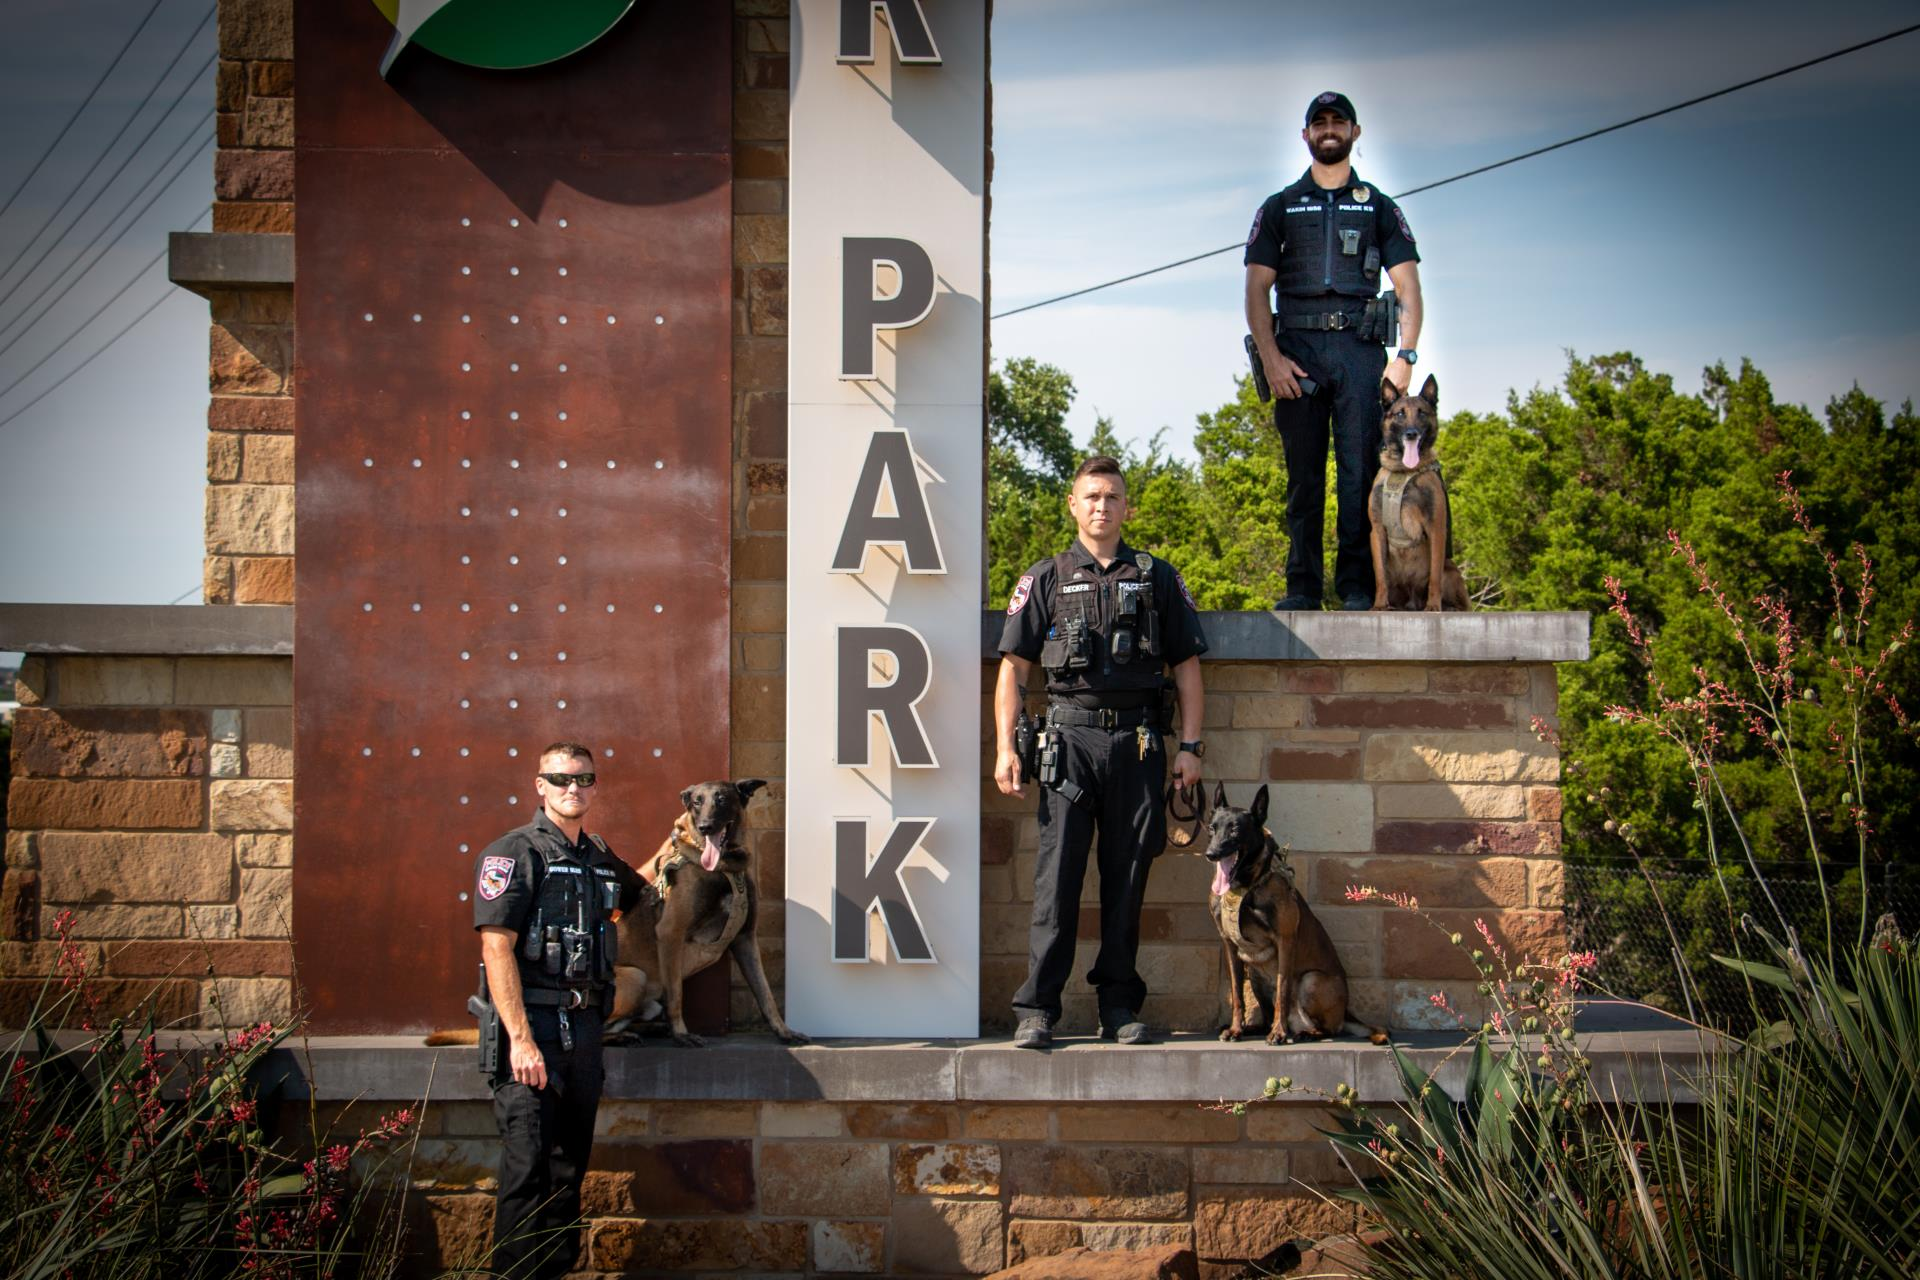 Patrol Division | City of Cedar Park, Texas